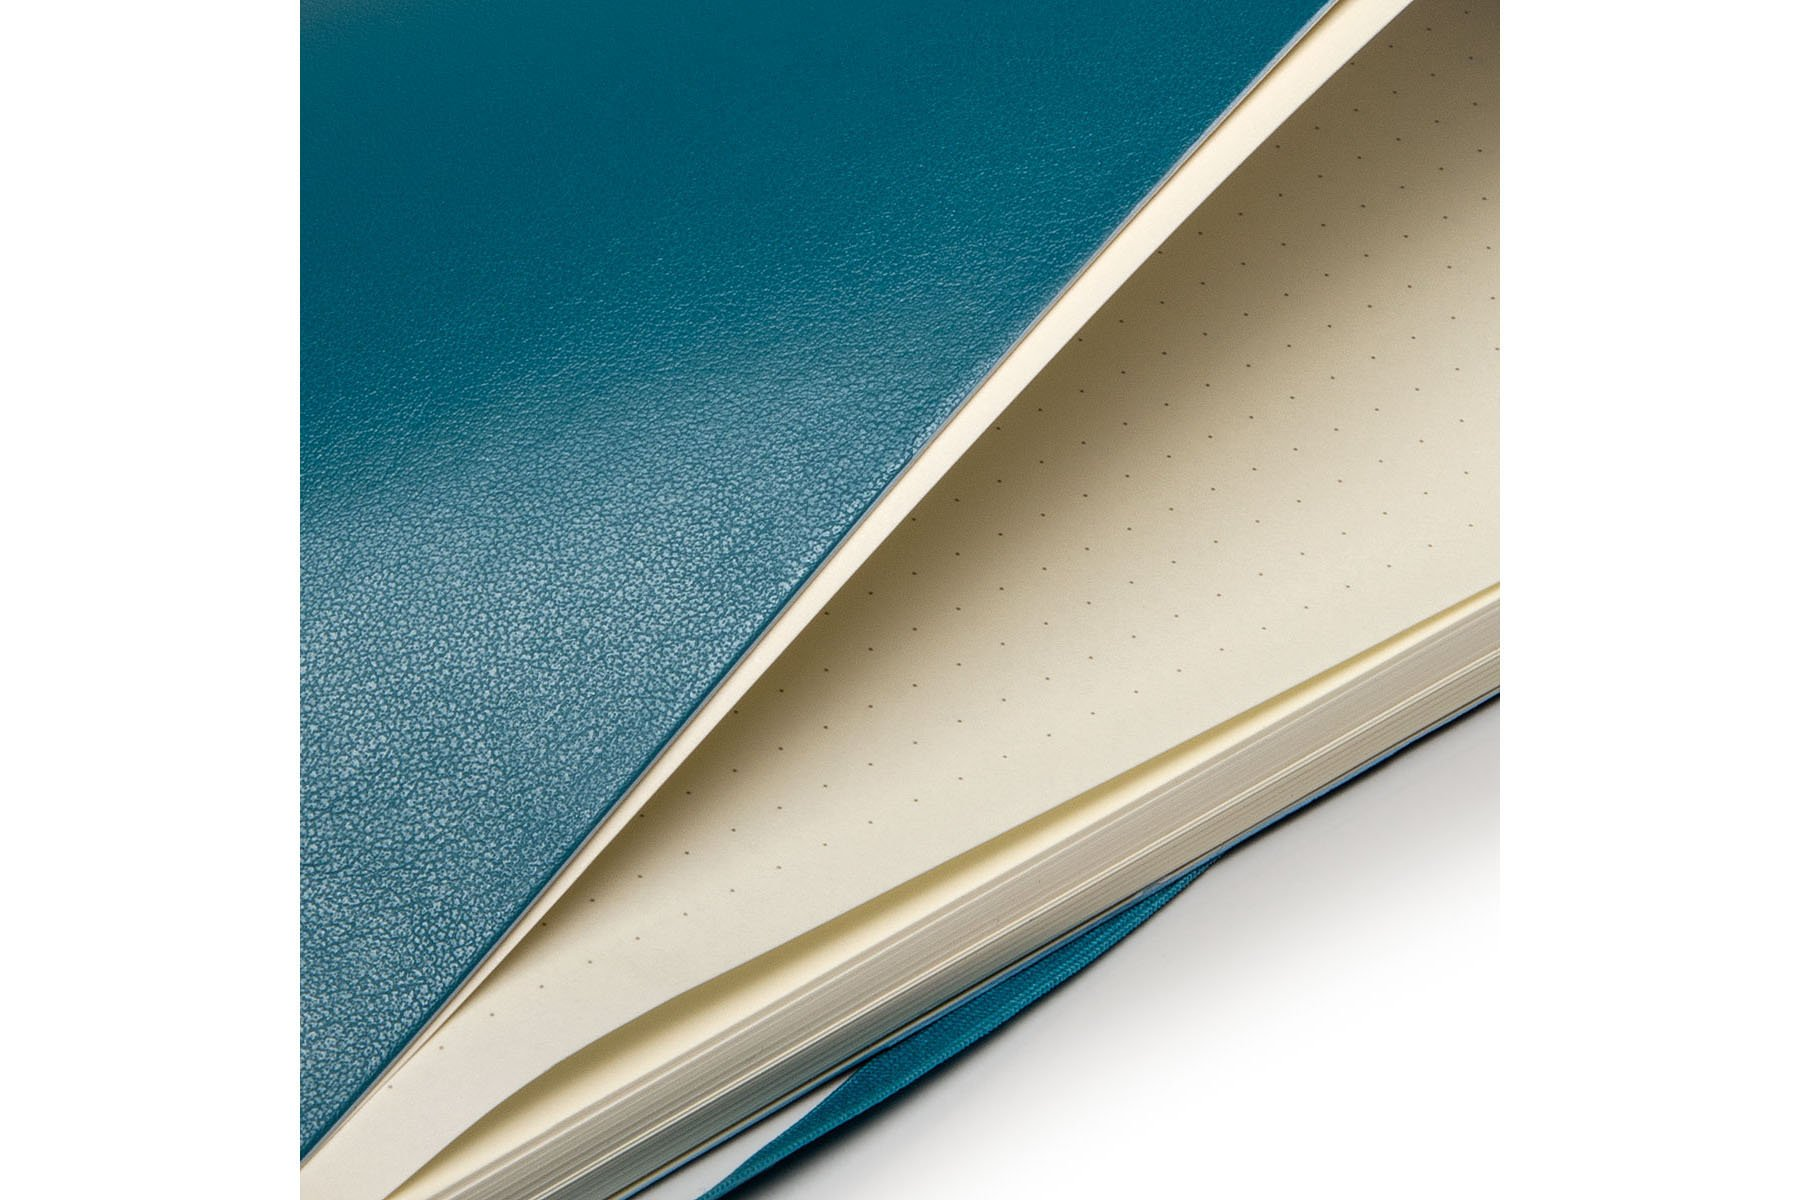 Moleskine Classic Notebook Large (5 x 8.25''), Dotted Pages, Underwater Blue, Soft Cover Notebook for Writing, Sketching, Journals by Ingramcontent (Image #6)